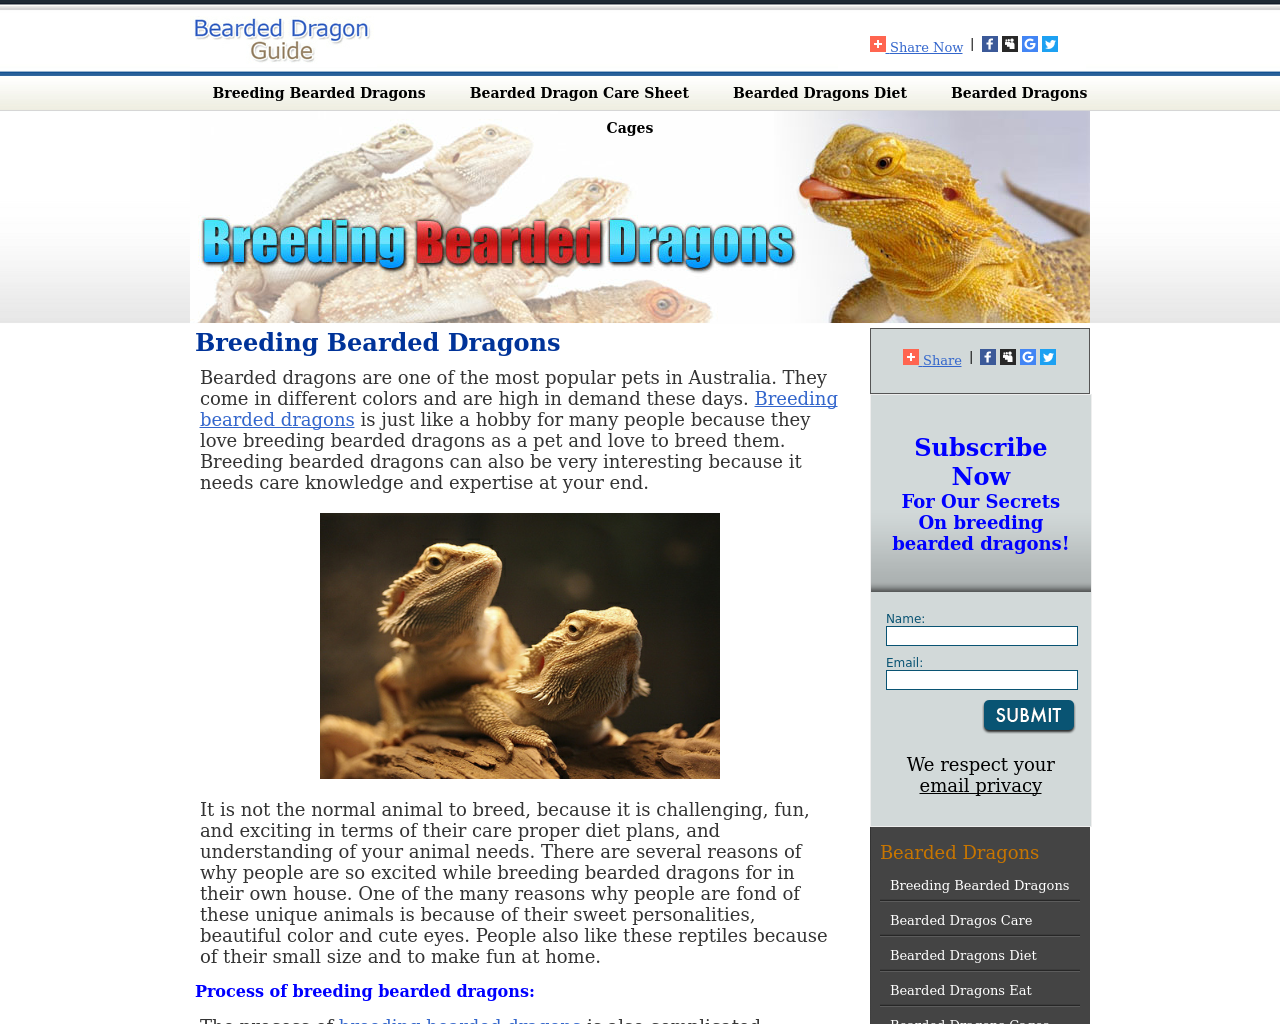 Breeding-Bearded-Dragons-Advertising-Reviews-Pricing